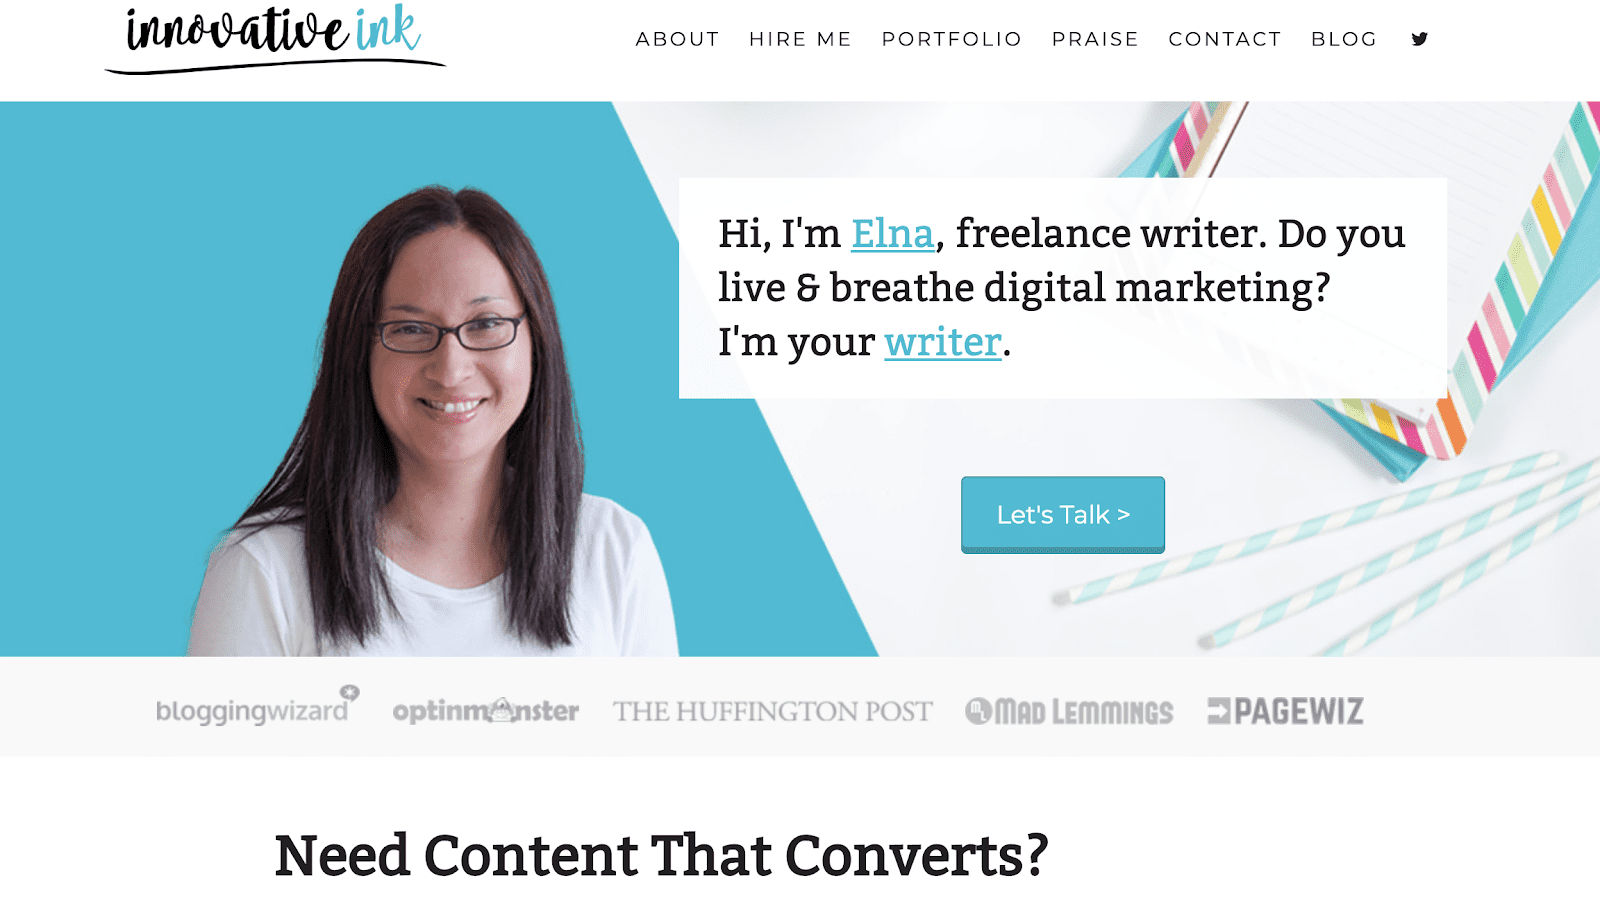 Freelance writer portfolio example with graphic design and imagery